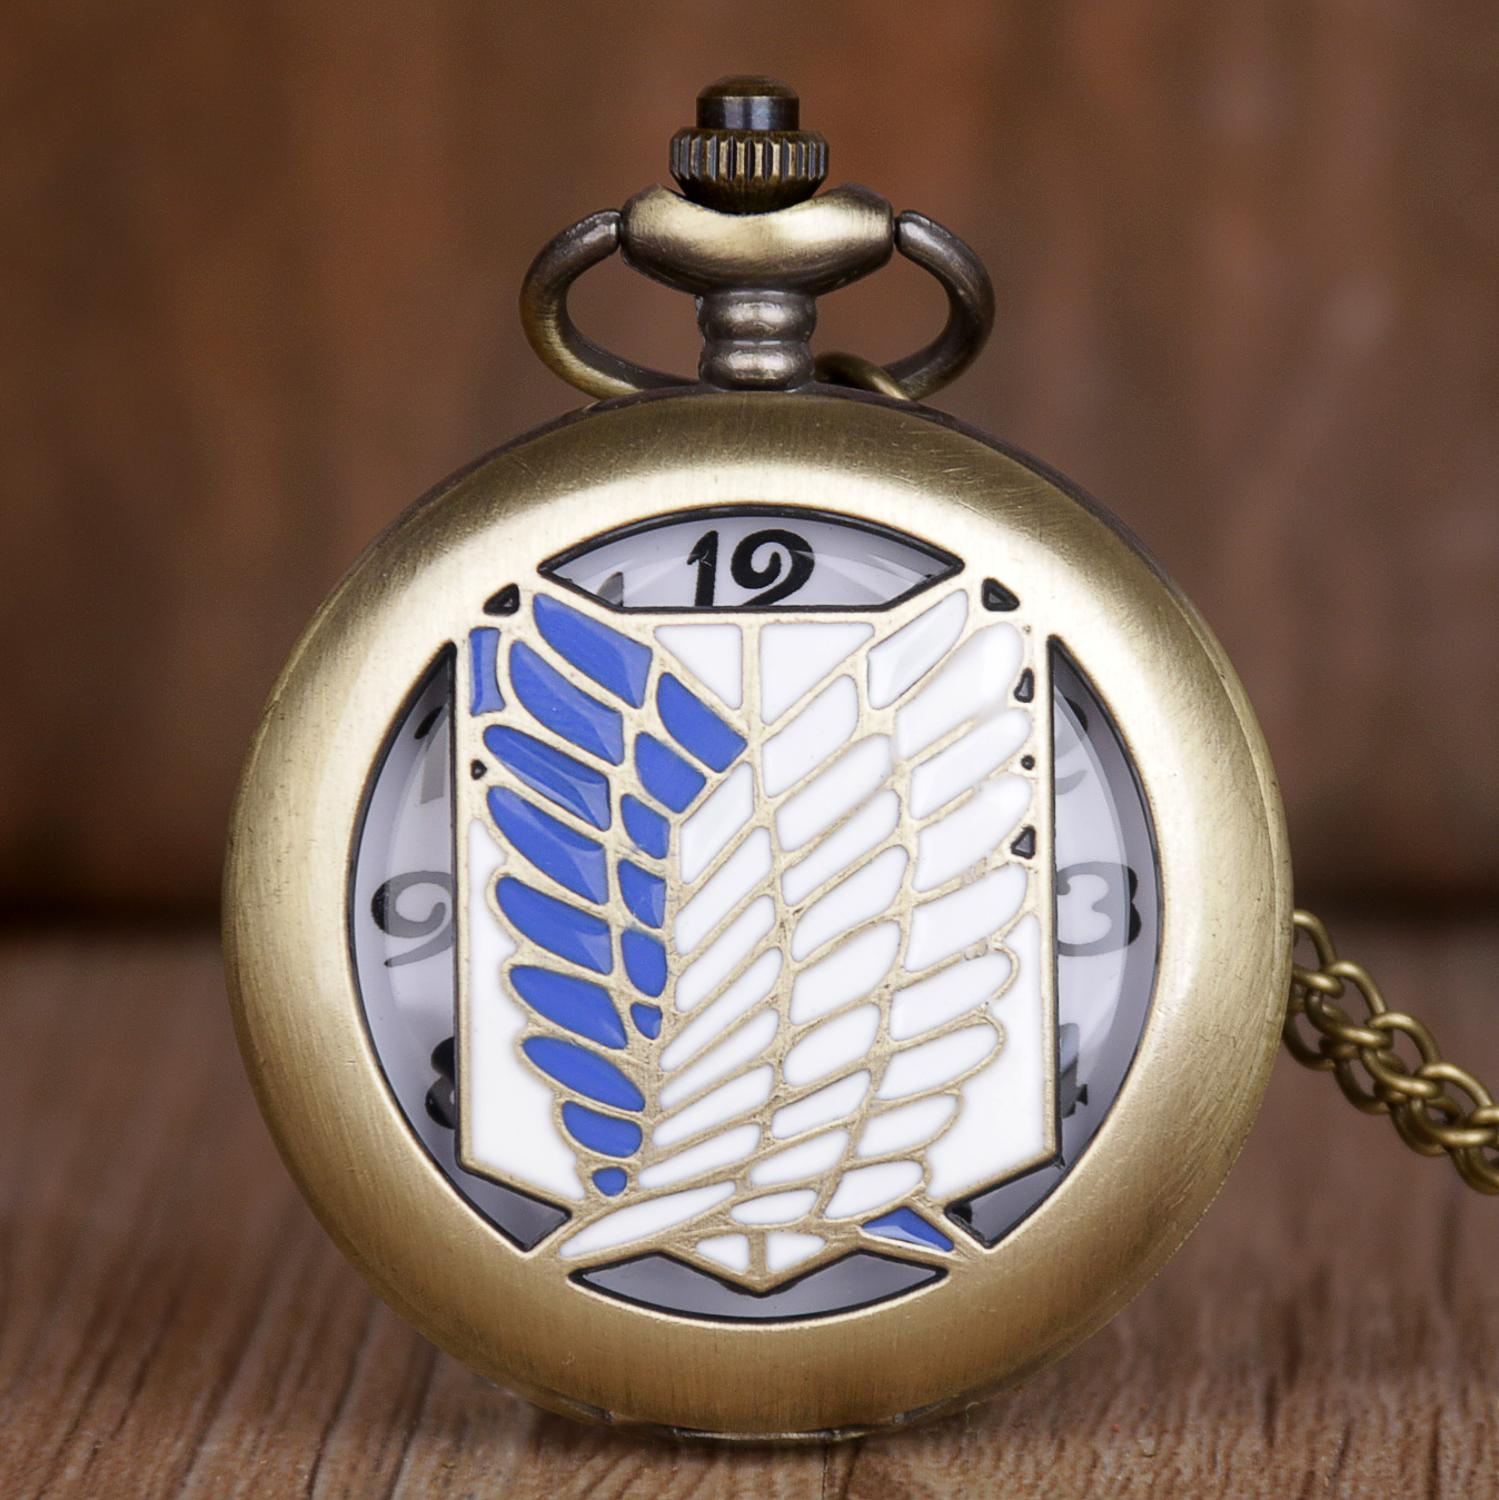 Hot Saling Retro Bronze Pocket Watch Attack On Titan Wings Of Liberty Clamshell Design Quartz Pocket Watch For Men Women